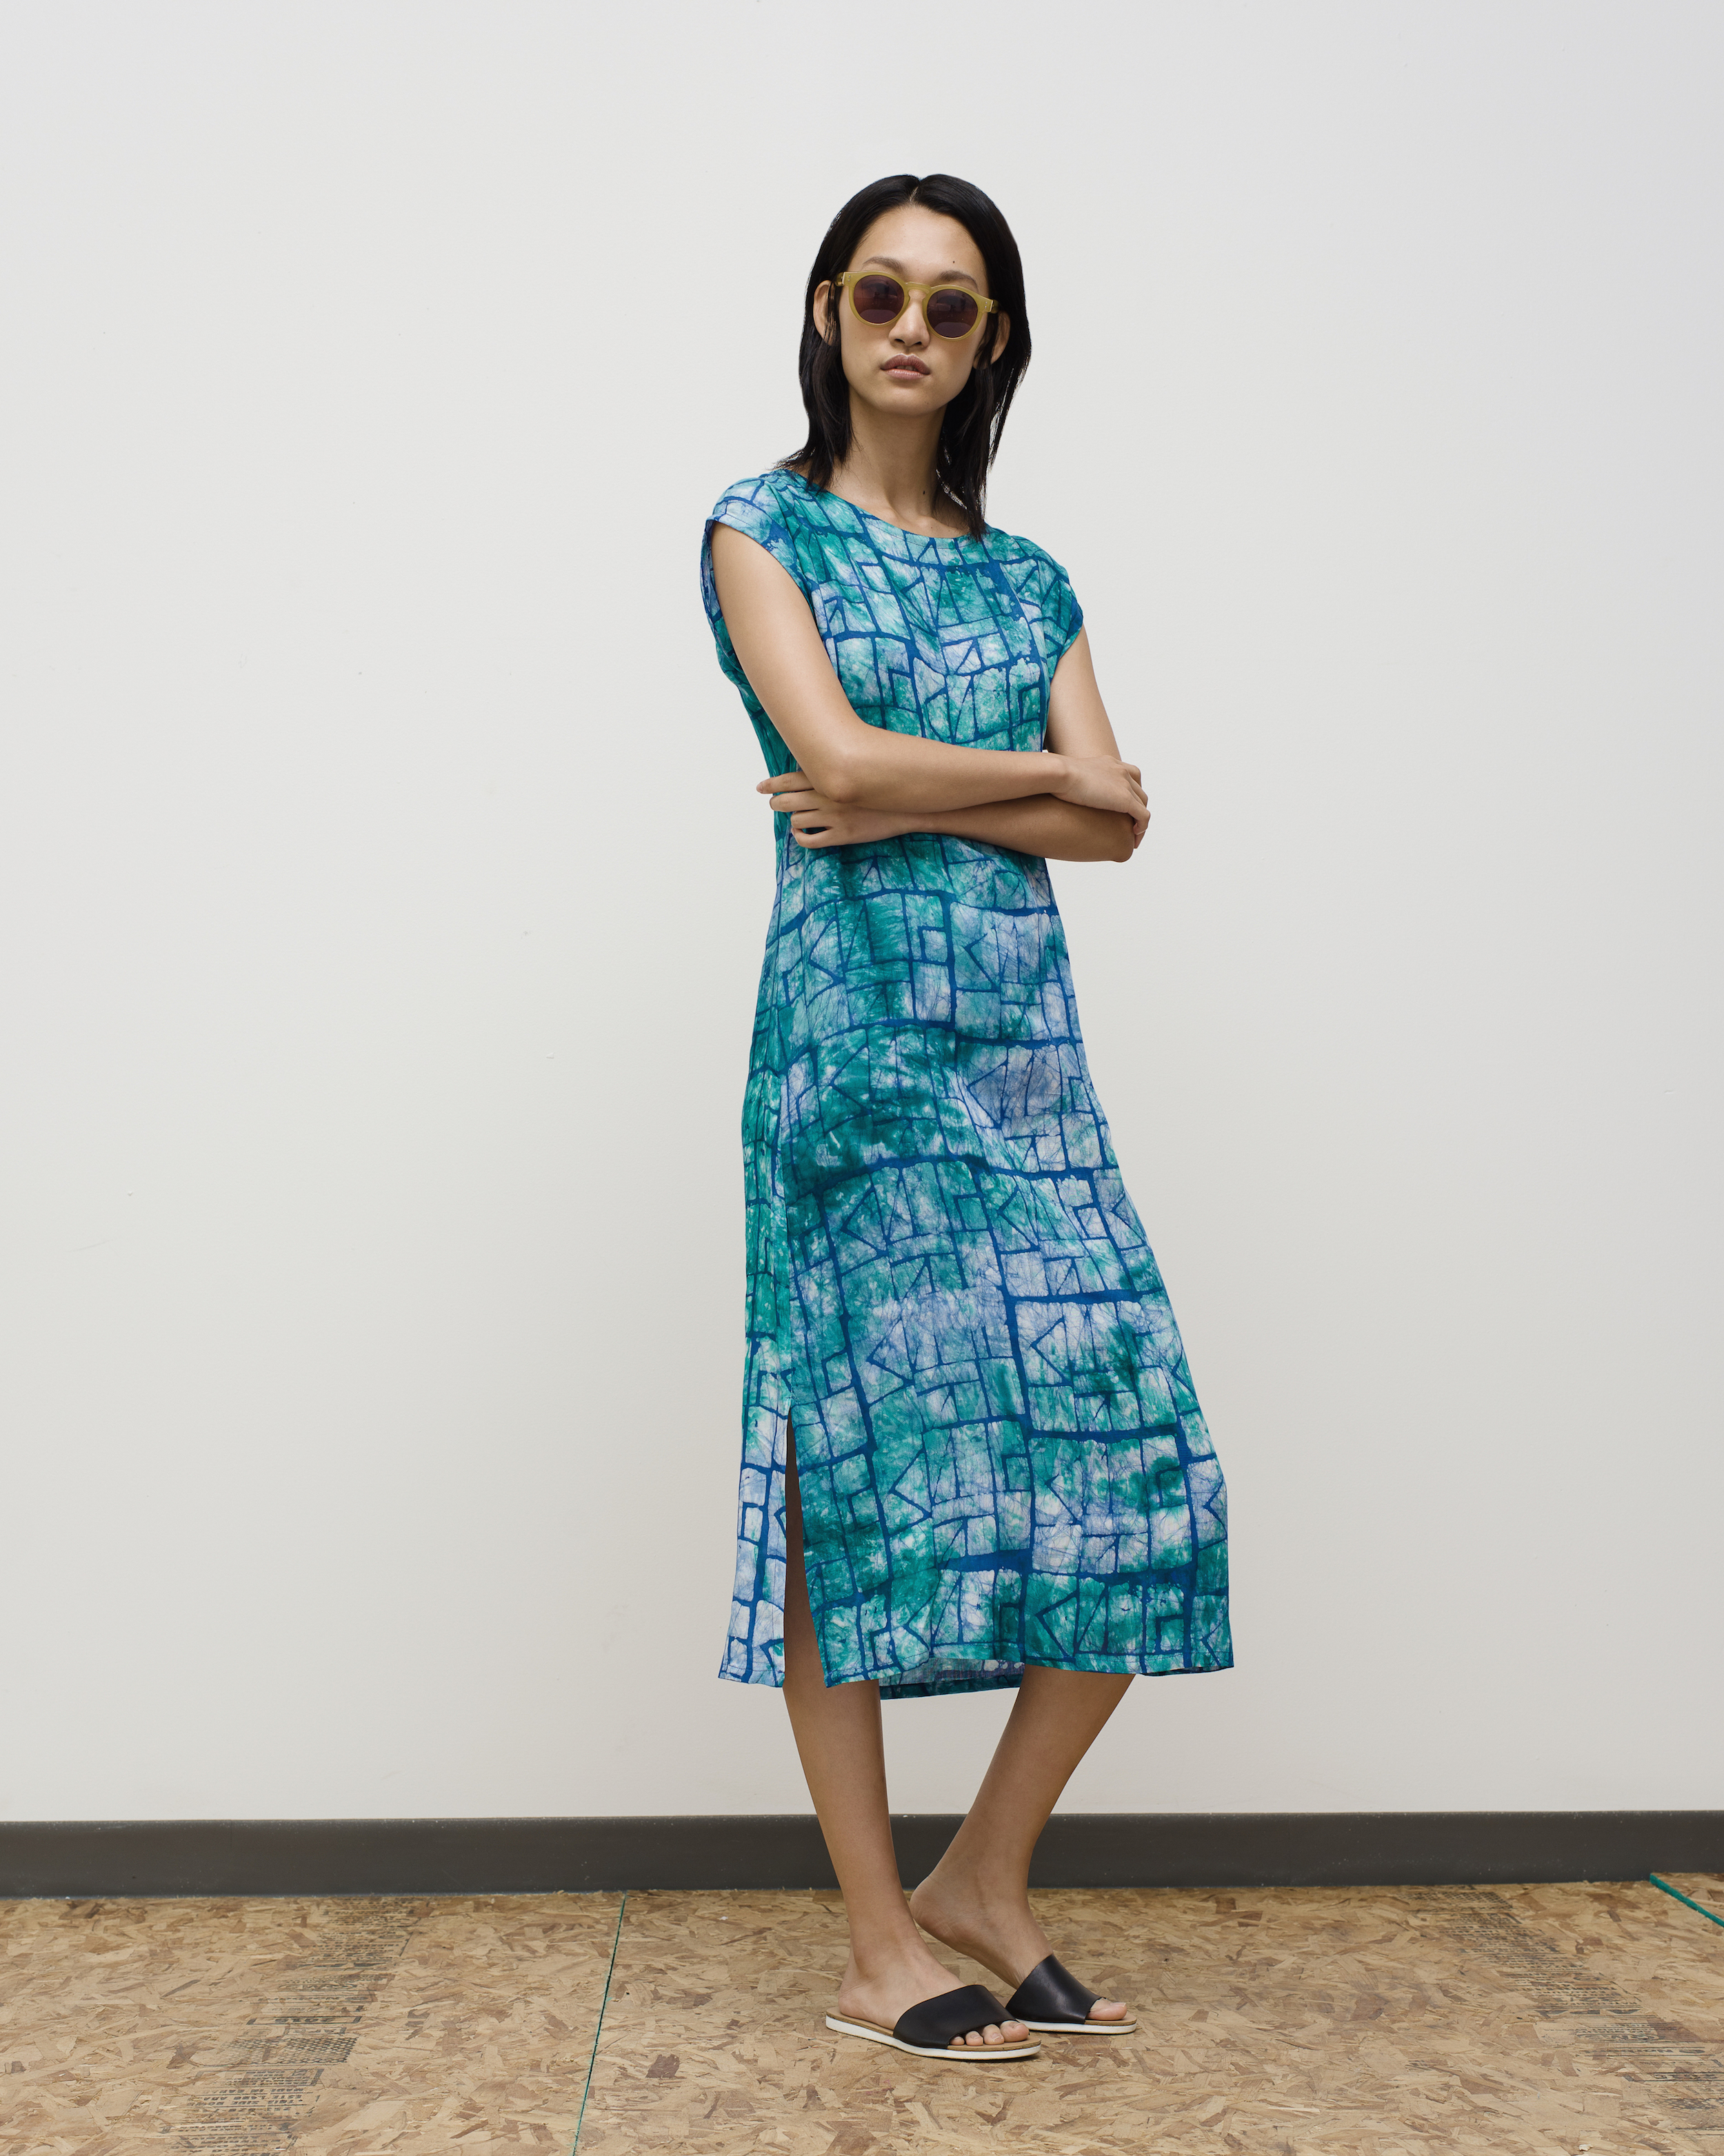 Maena Bou Bou Dress by Osei Duro 135 at Gather&See.jpg